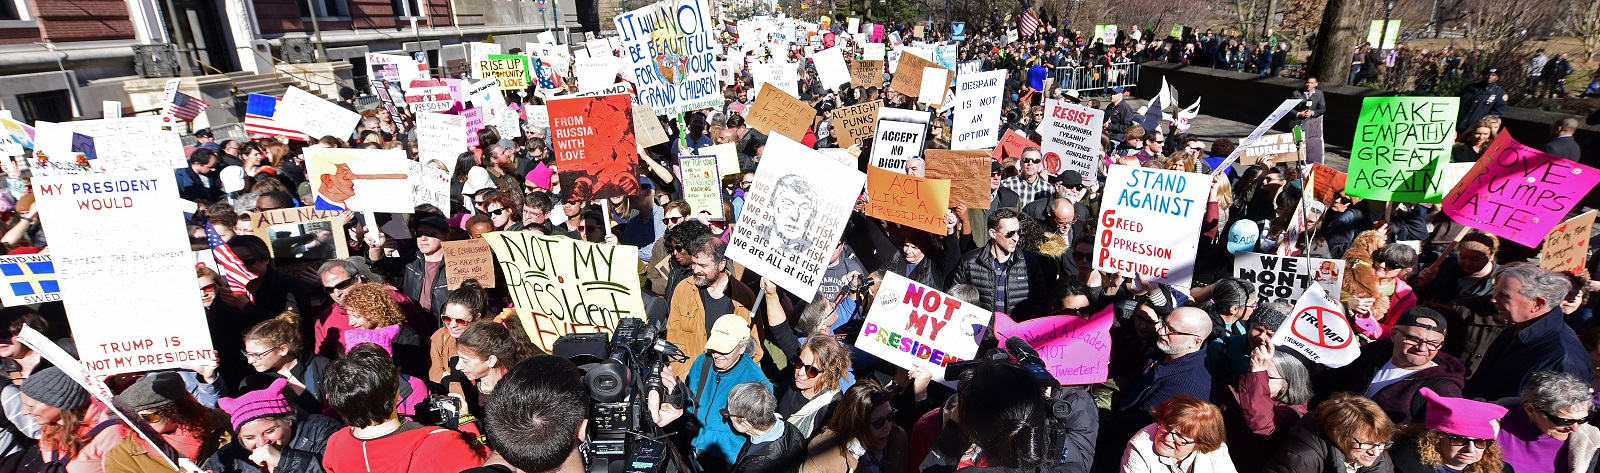 Protestors at a Not My President Day event In New York on 20 February (Photo: Andy Katz/Getty Images)